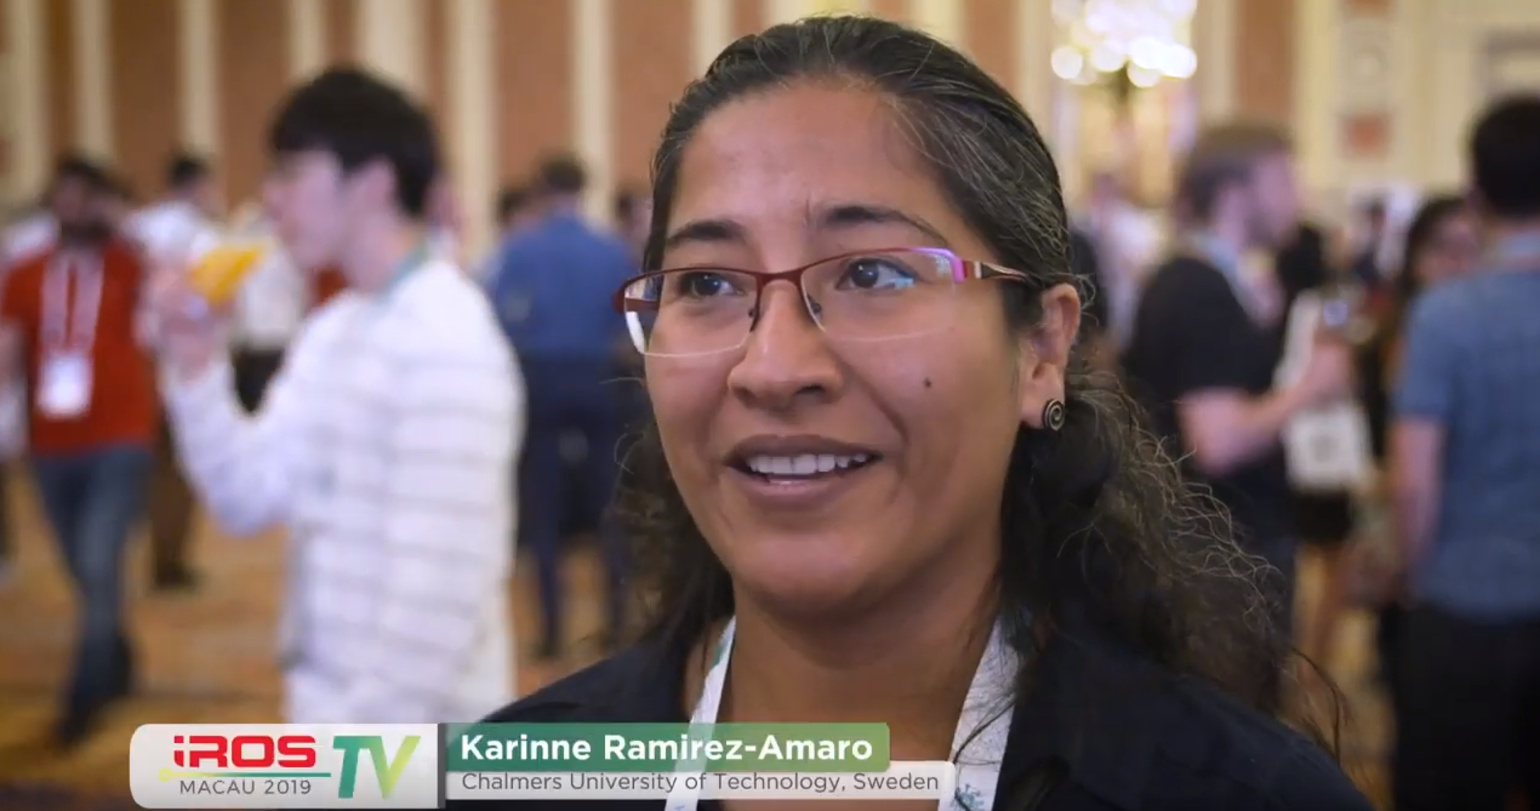 IROS TV 2019- Welcome to IROS 2019- Welcome Reception